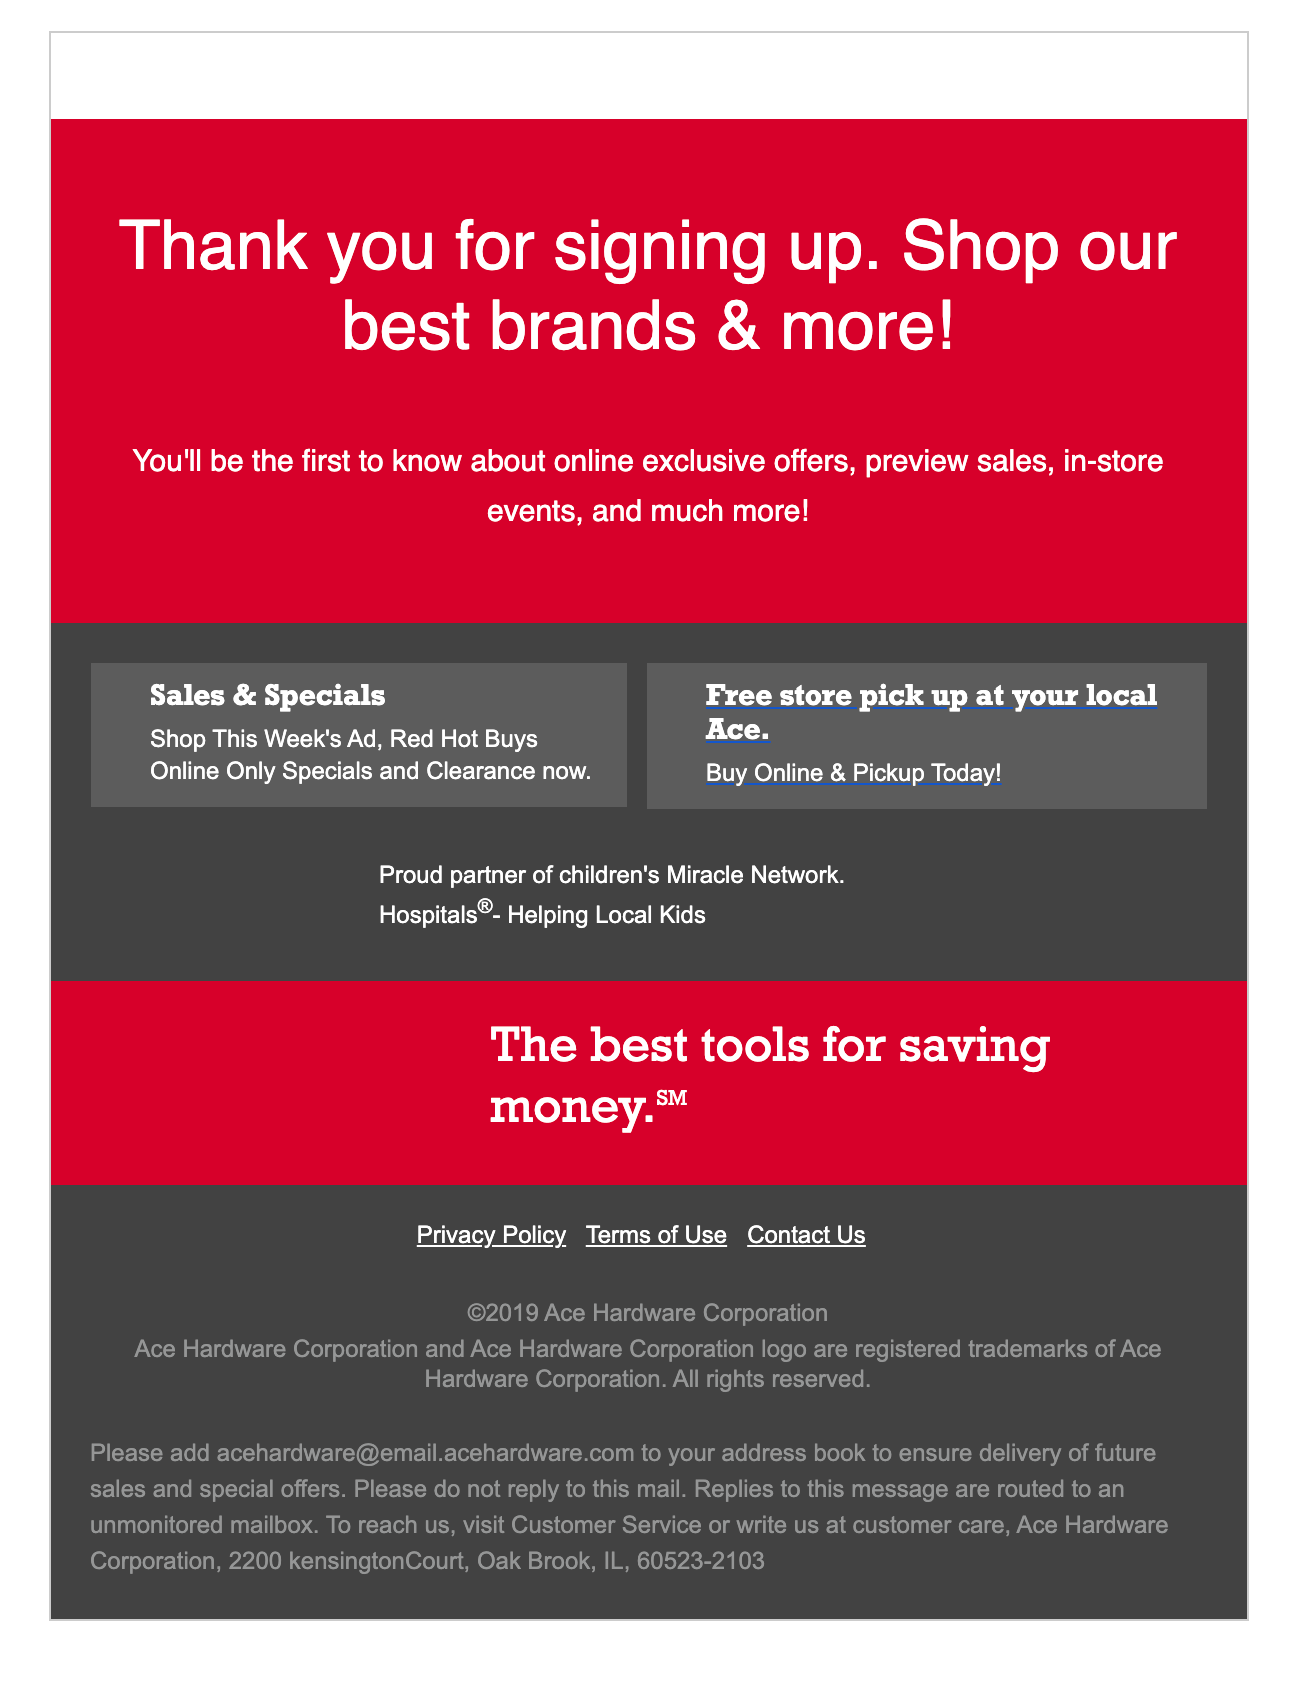 Ace Hardware email with images off